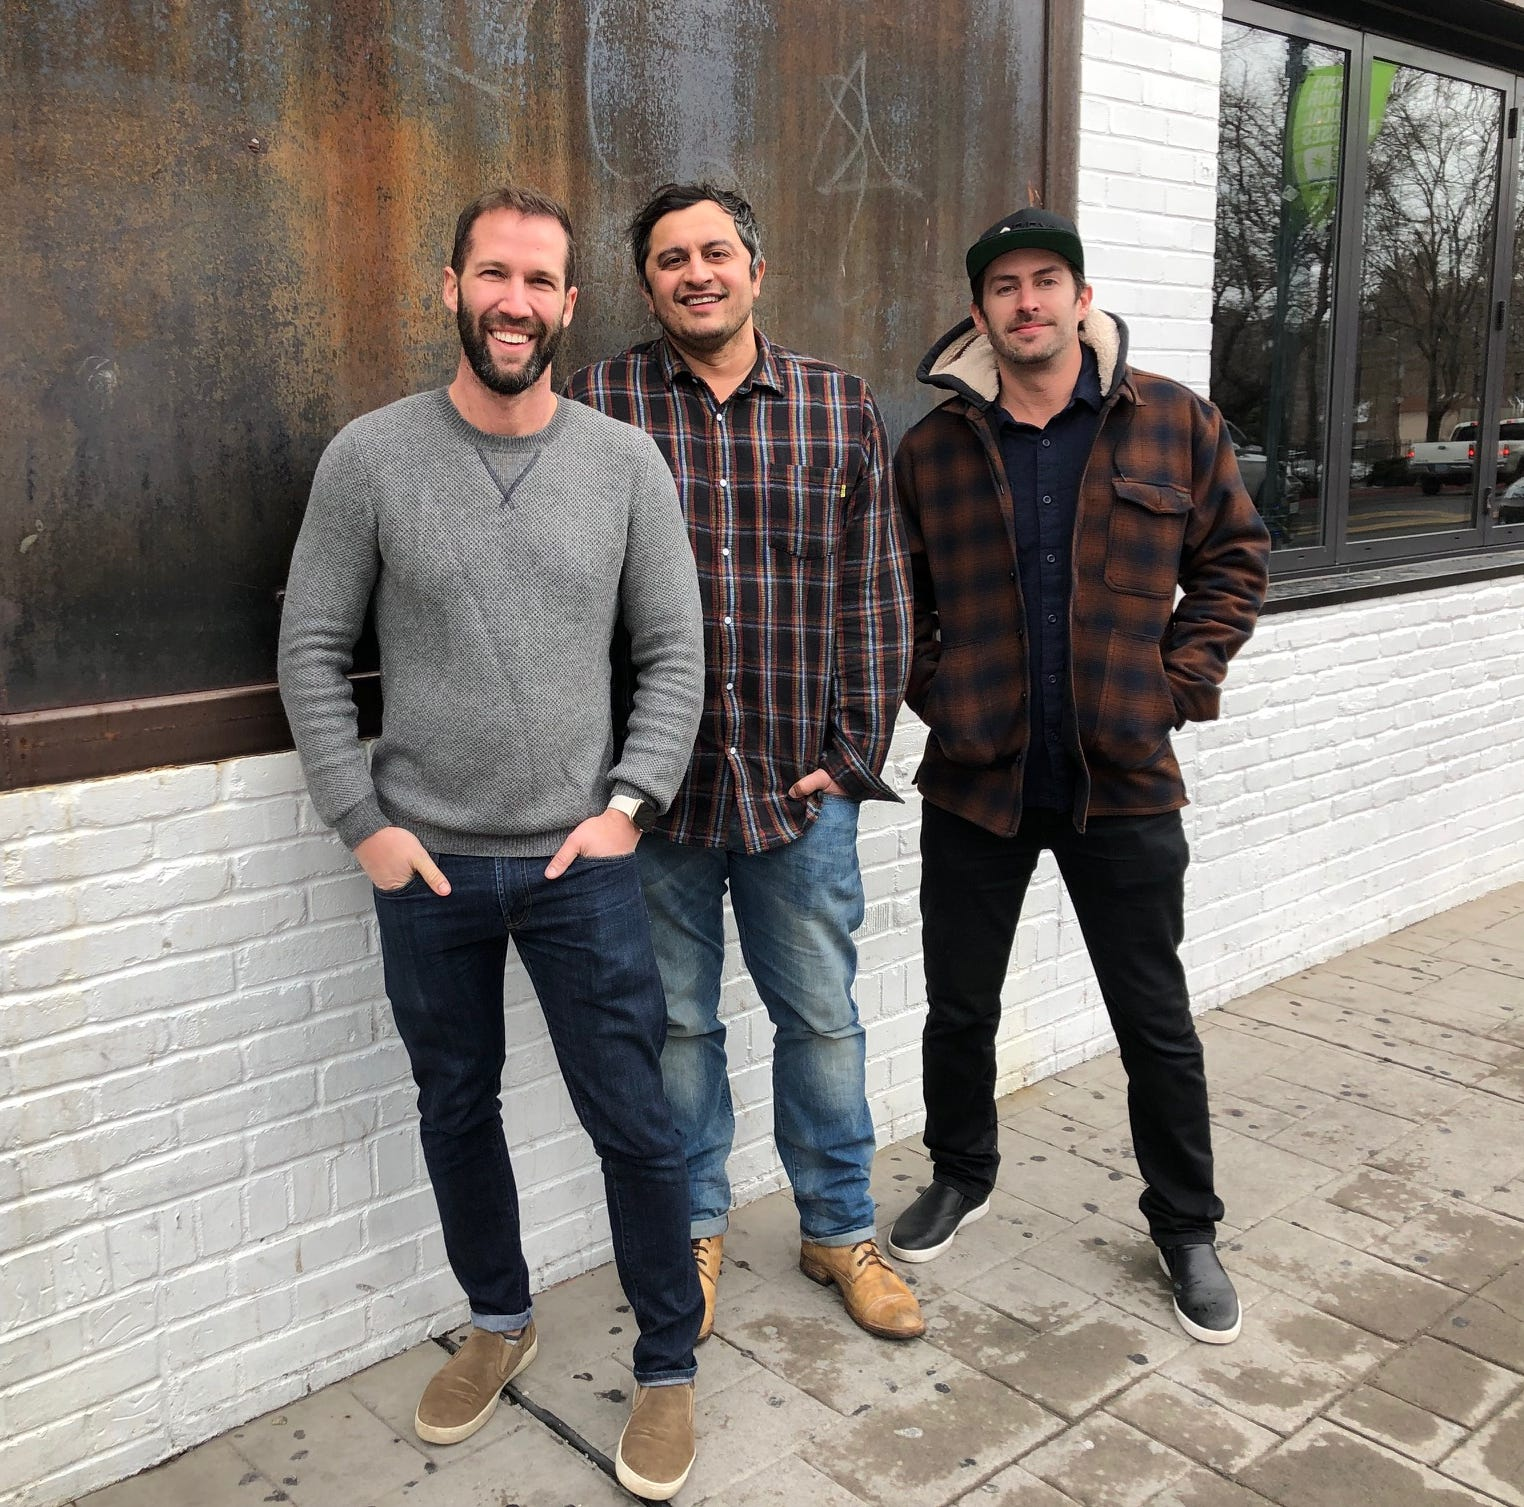 Fun boy 3: Meet the new owners of Imperial Bar